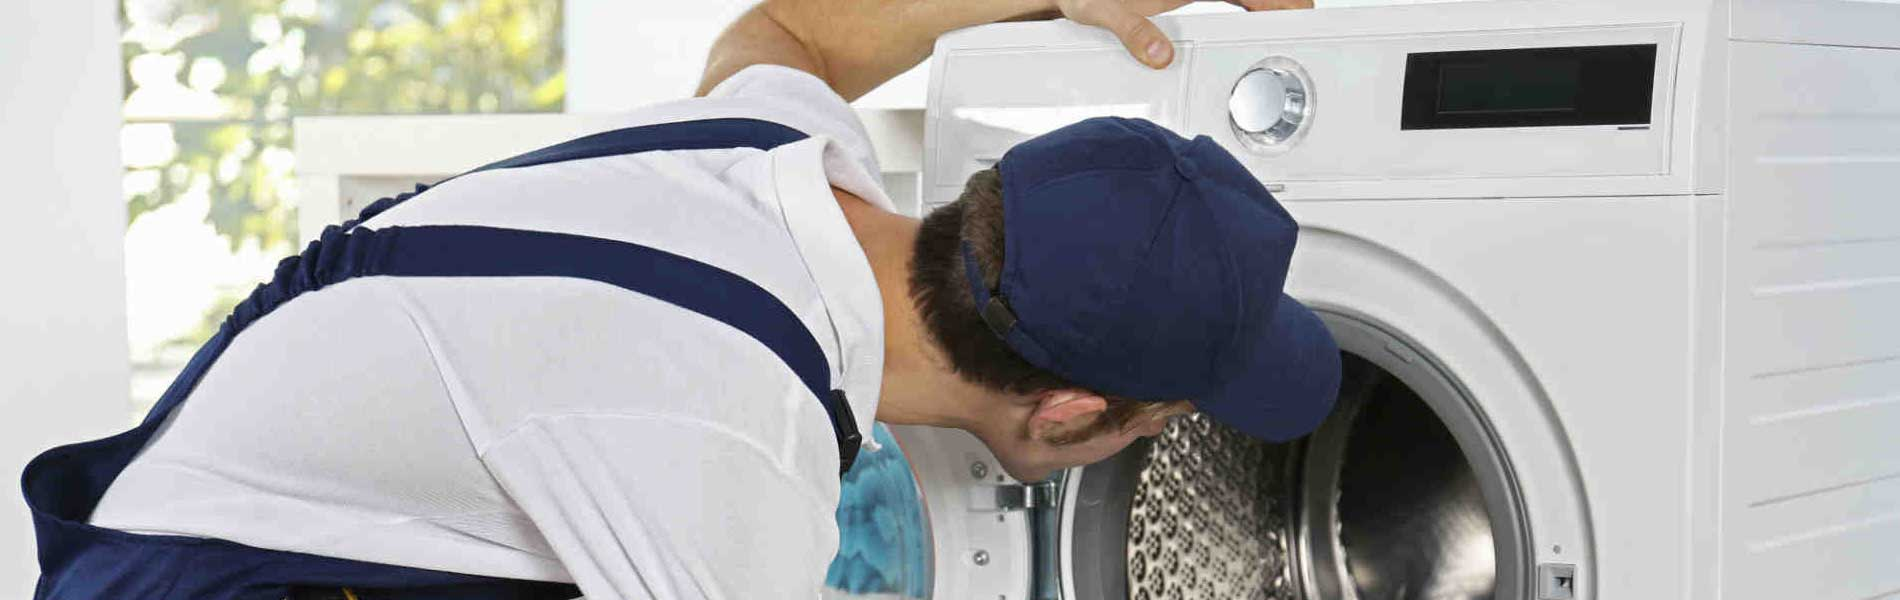 LG Washing Machine Mechanic in MKB Nagar